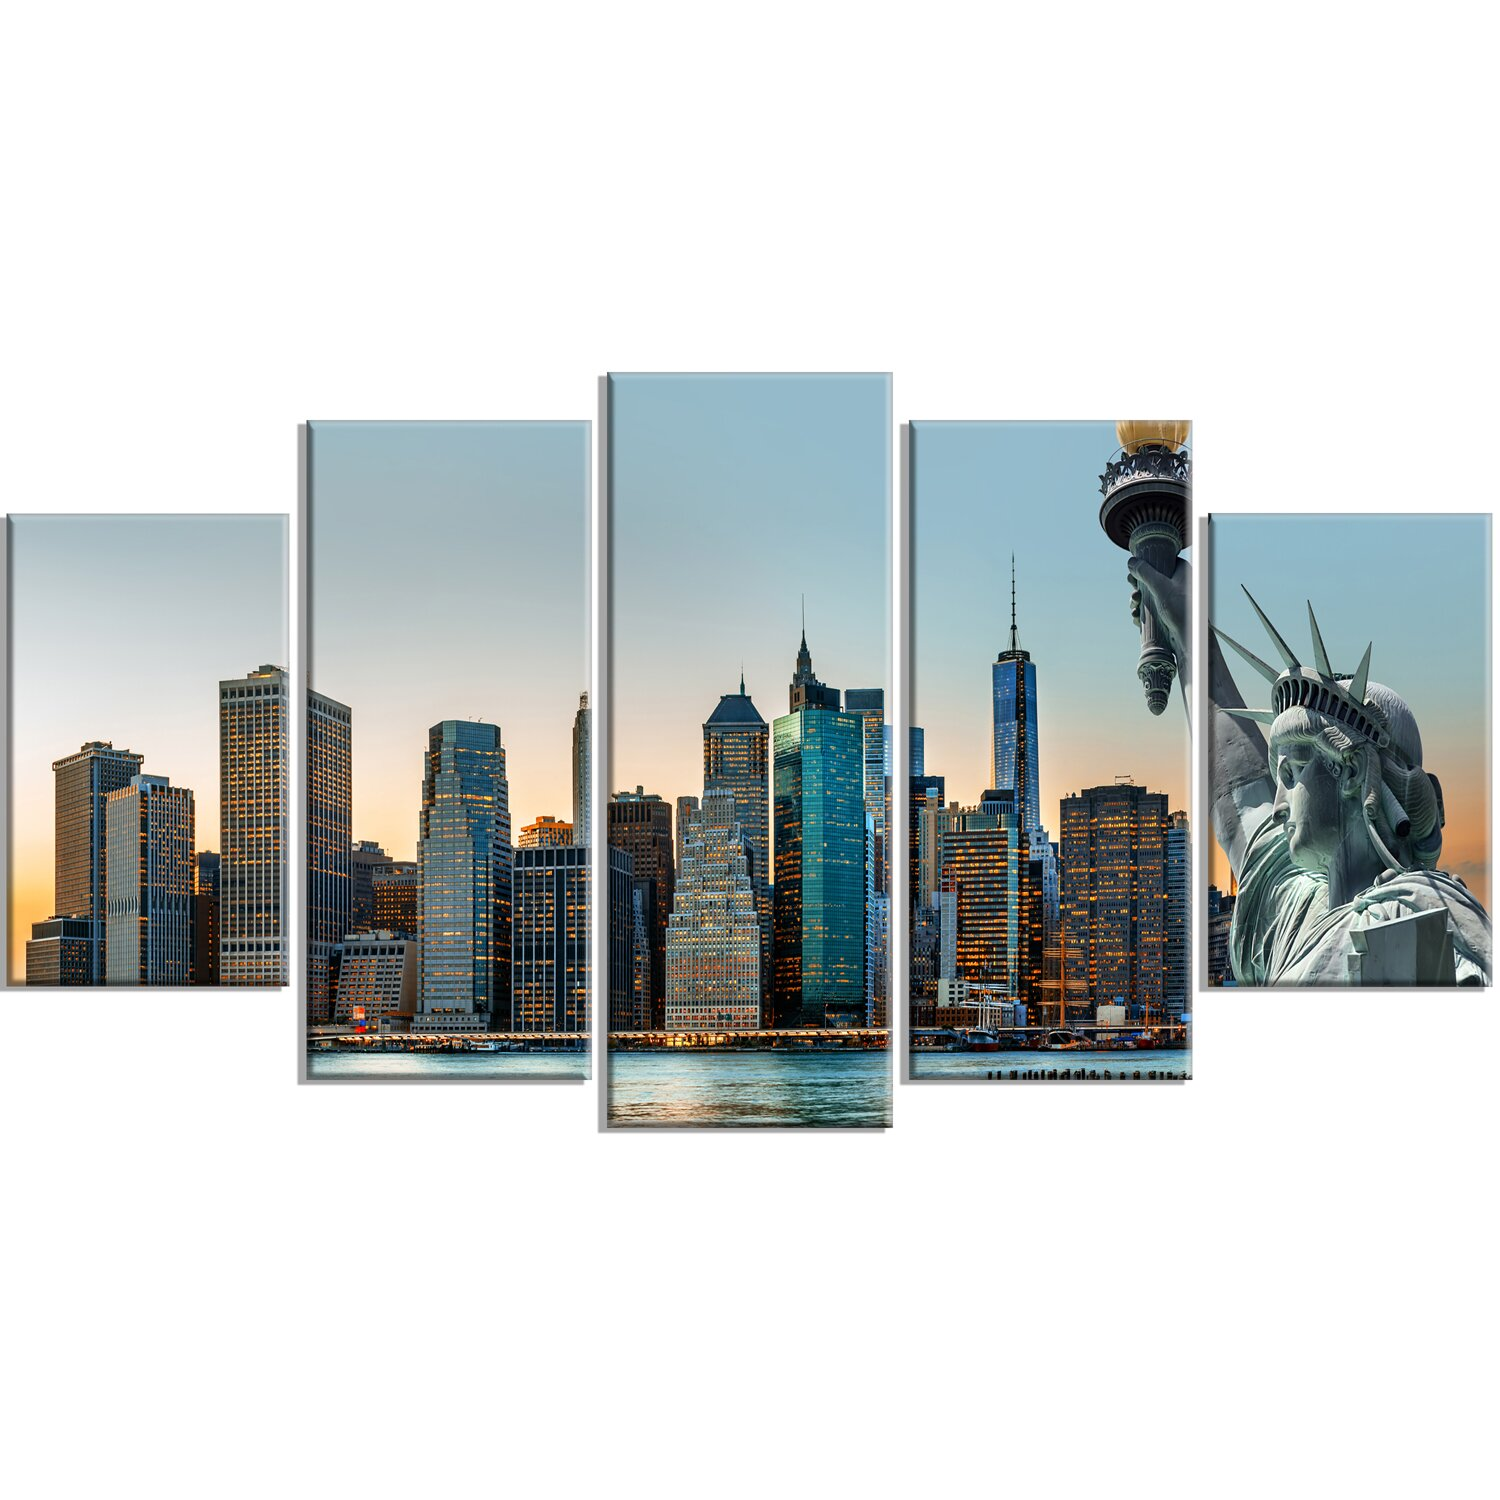 Designart New York City Skyline Panorama 5 Piece Wall: DesignArt 'New York City Skyline Panorama' 5 Piece Wall